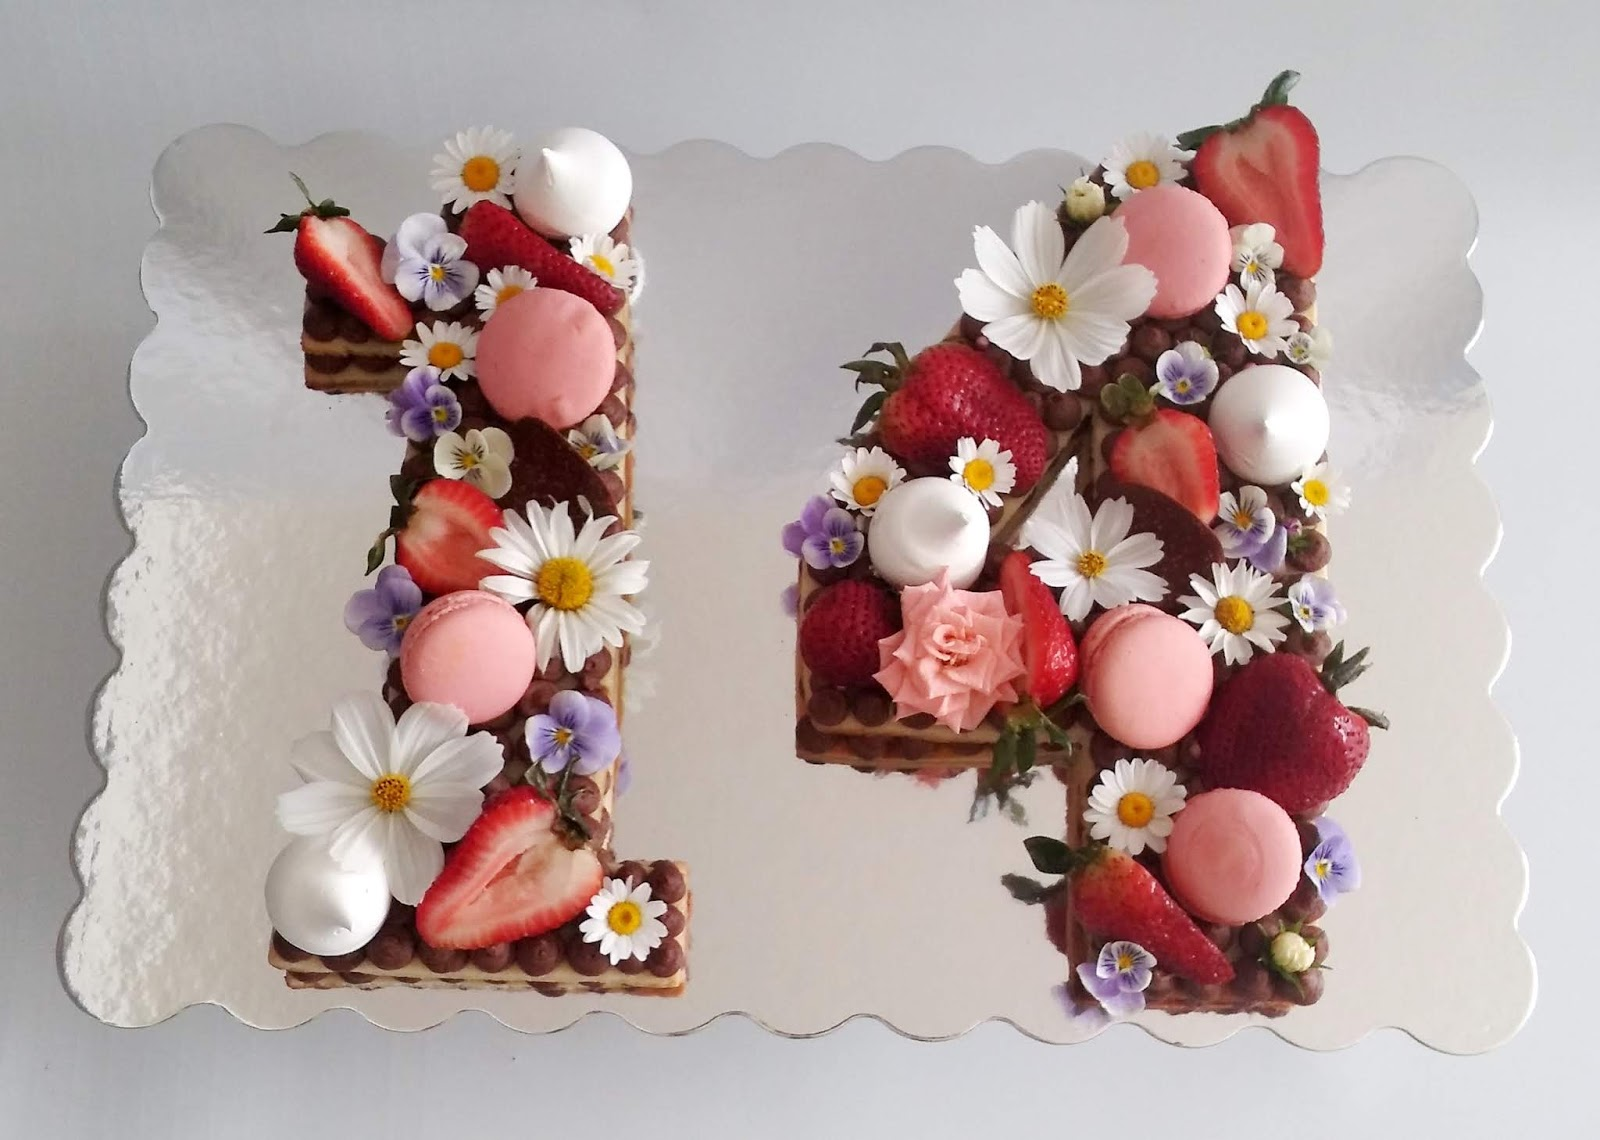 The Cream Of This Cake Is Made Out Mascarpone Decorations Are Fresh Flowers Macaroons Meringues Strawberries And Last But Not Least